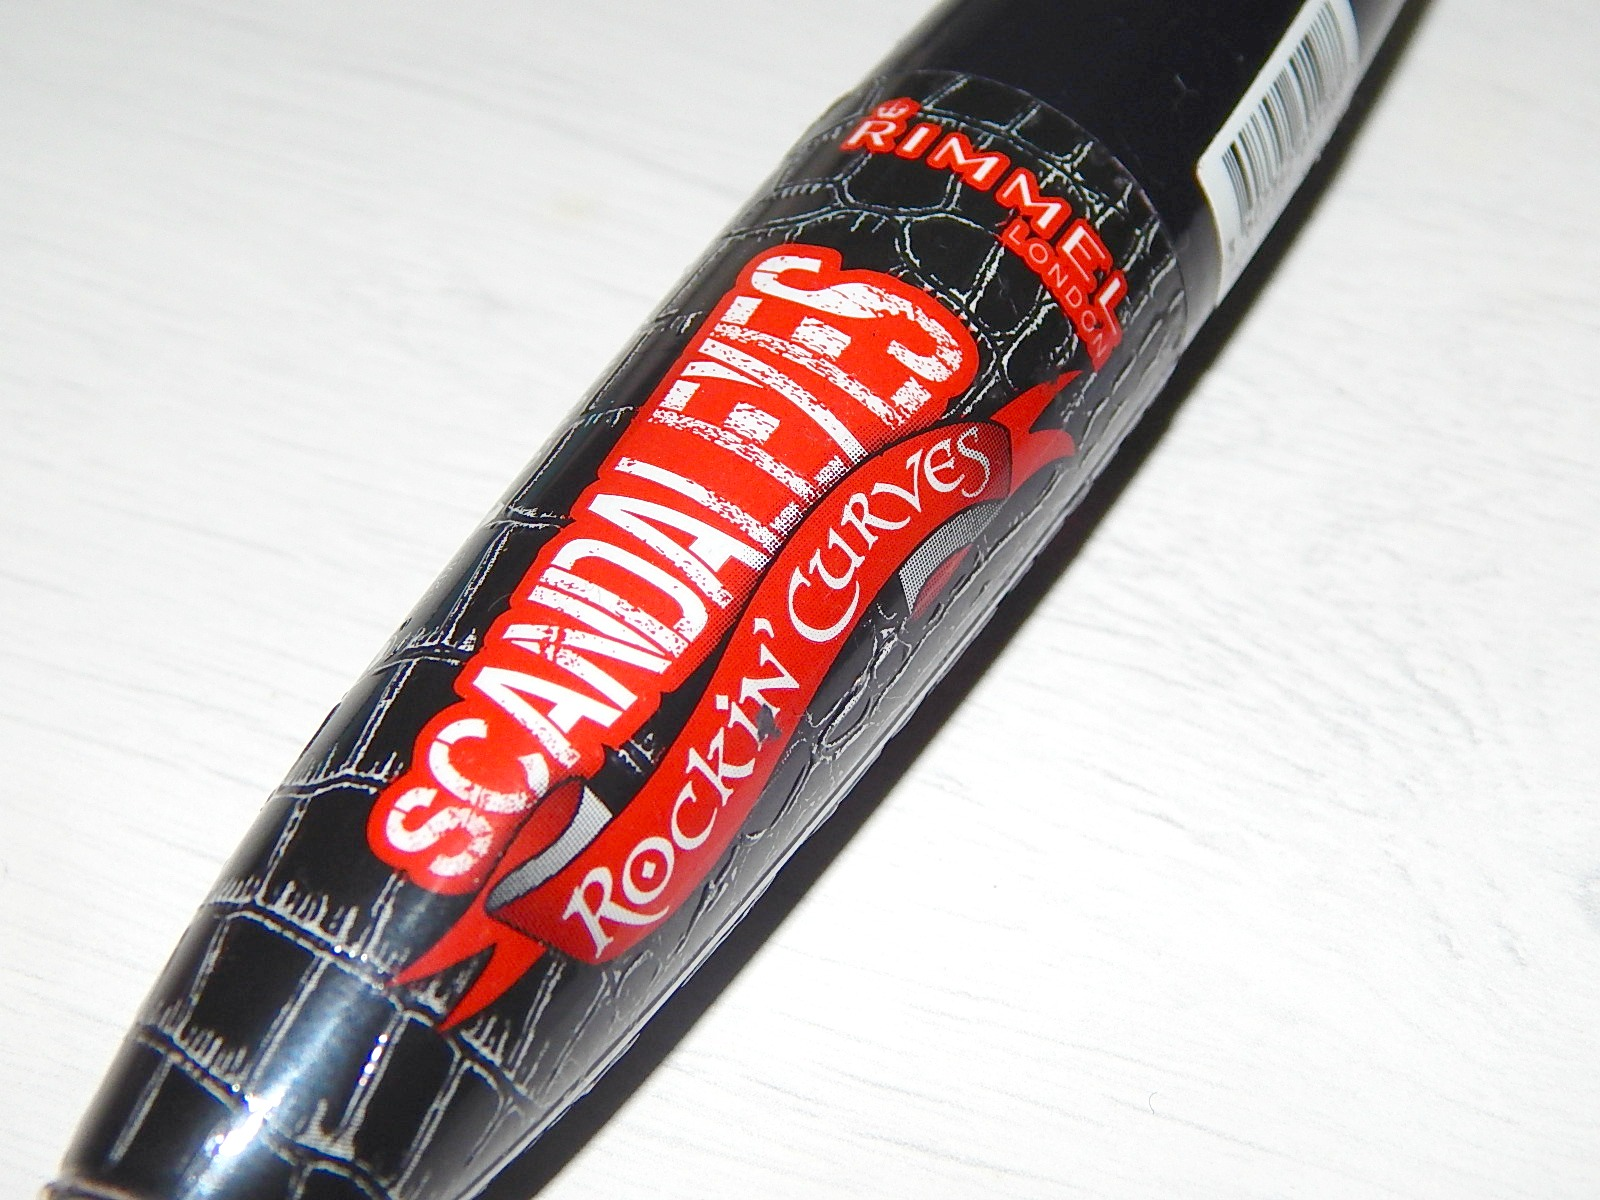 110c8e65e93 Rimmel ScandalEyes Rockin' Curves Review. DSCN4846. It's been a while since  I have royally slagged something off. I think I can blame my recent rants  about ...